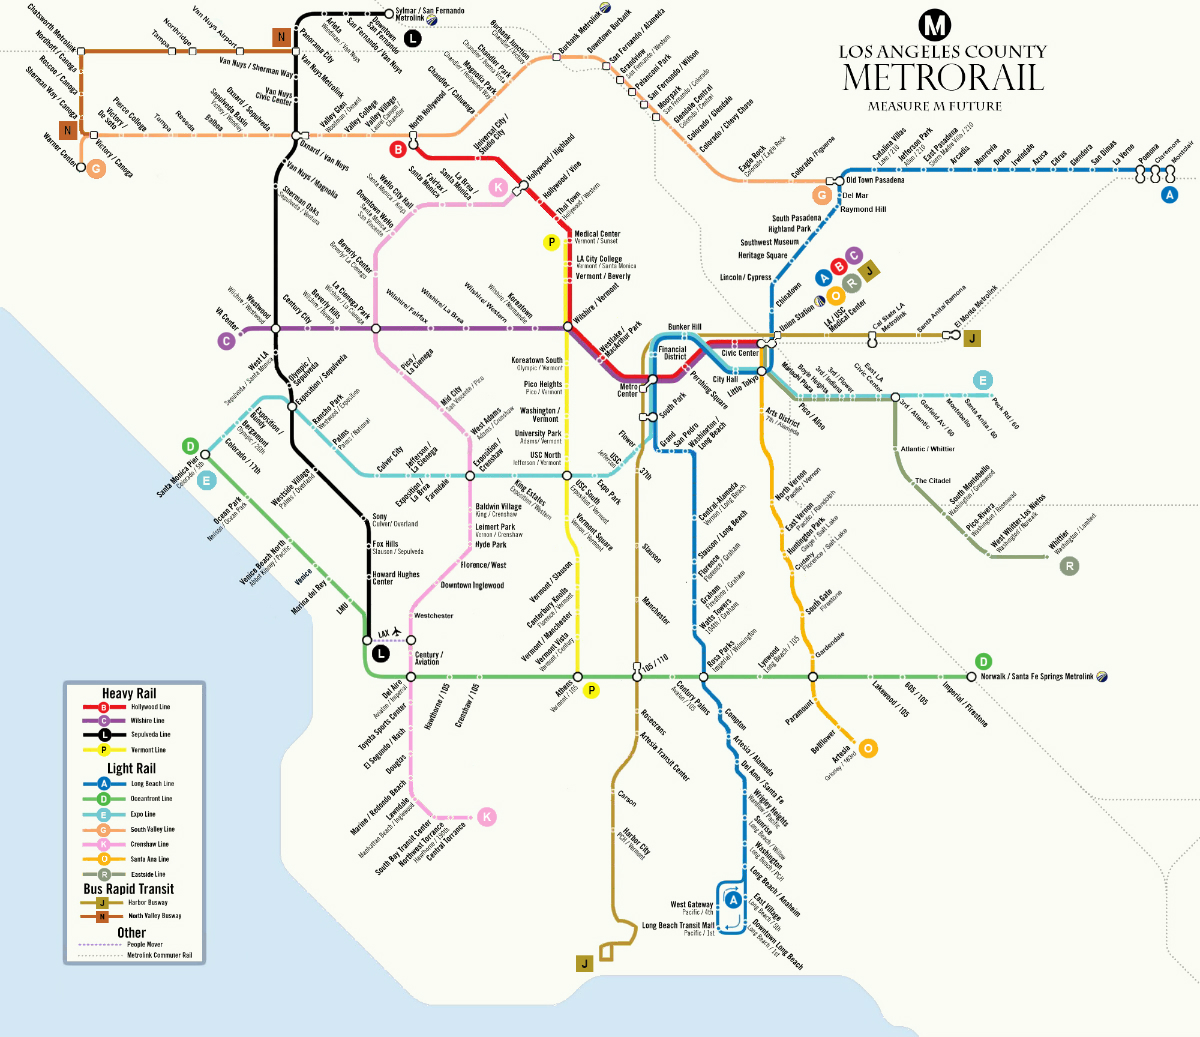 Measure M rail and BRT network. Image by xxx